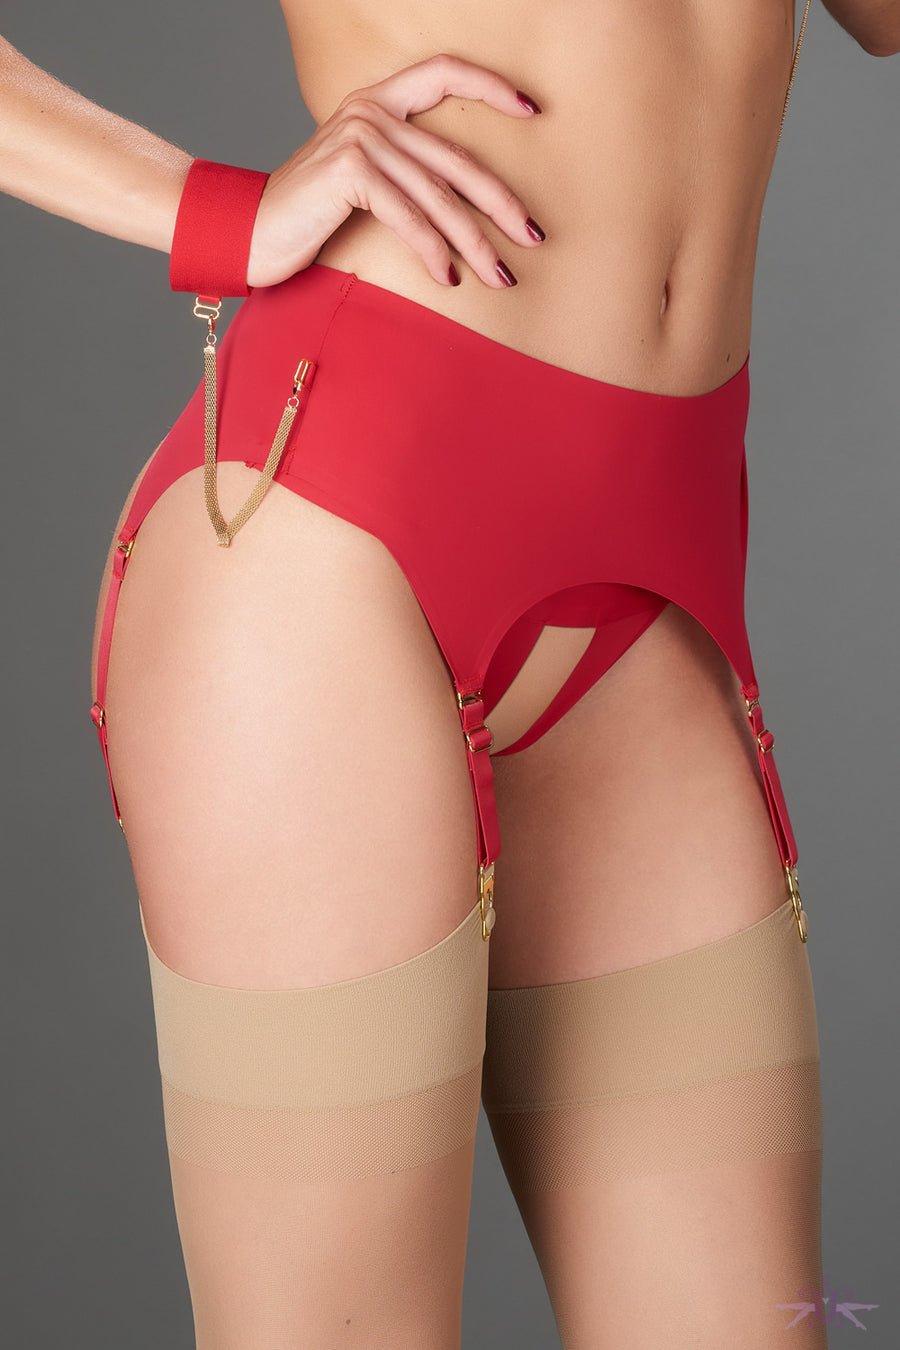 Maison Close Tapage Nocturne Red Garter Belt - Mayfair Stockings